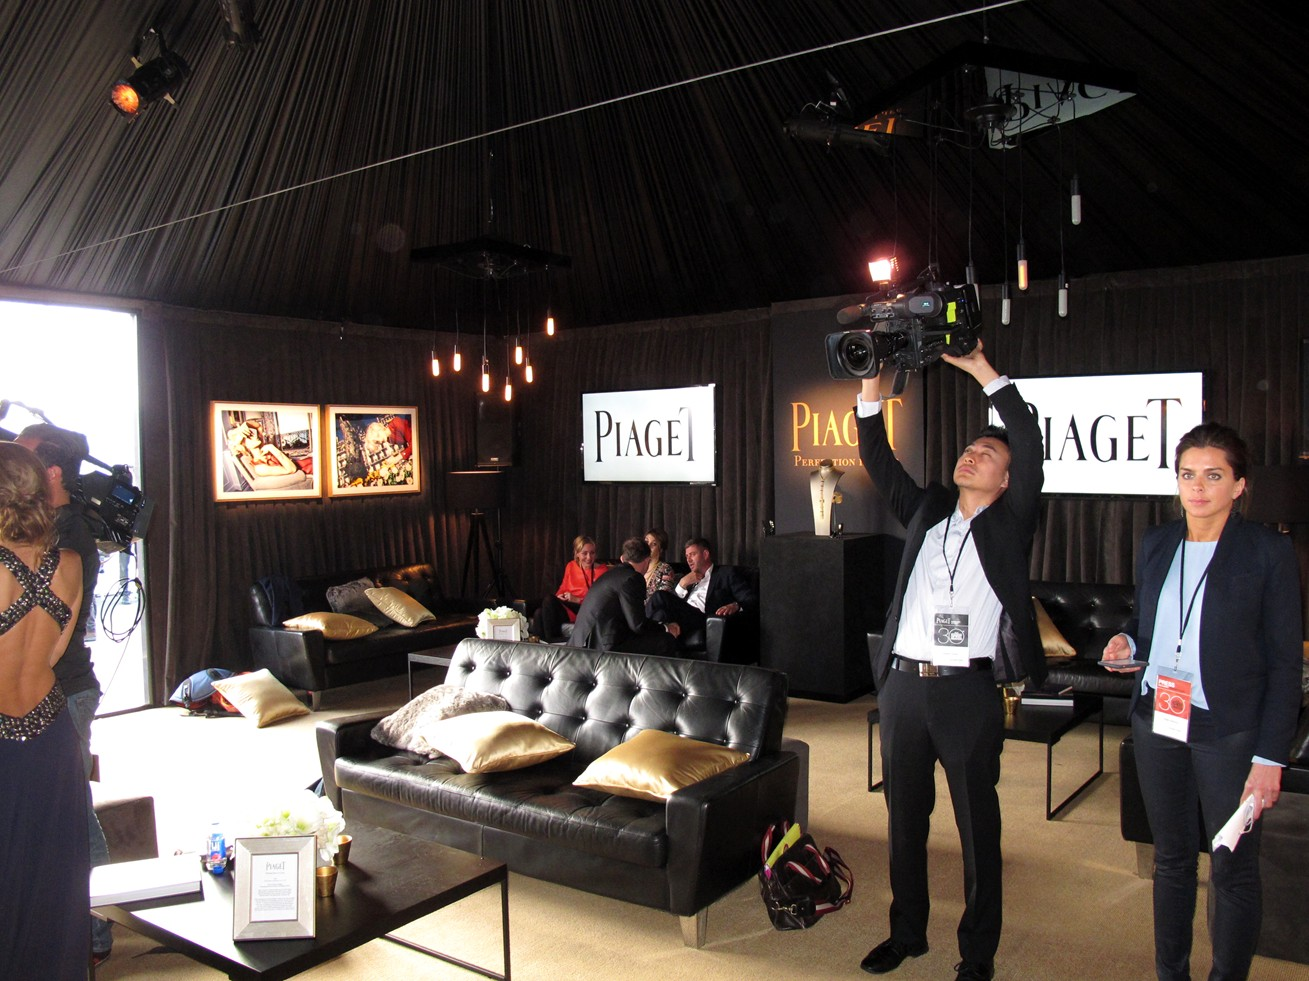 Spirit Awards, Piaget Tent